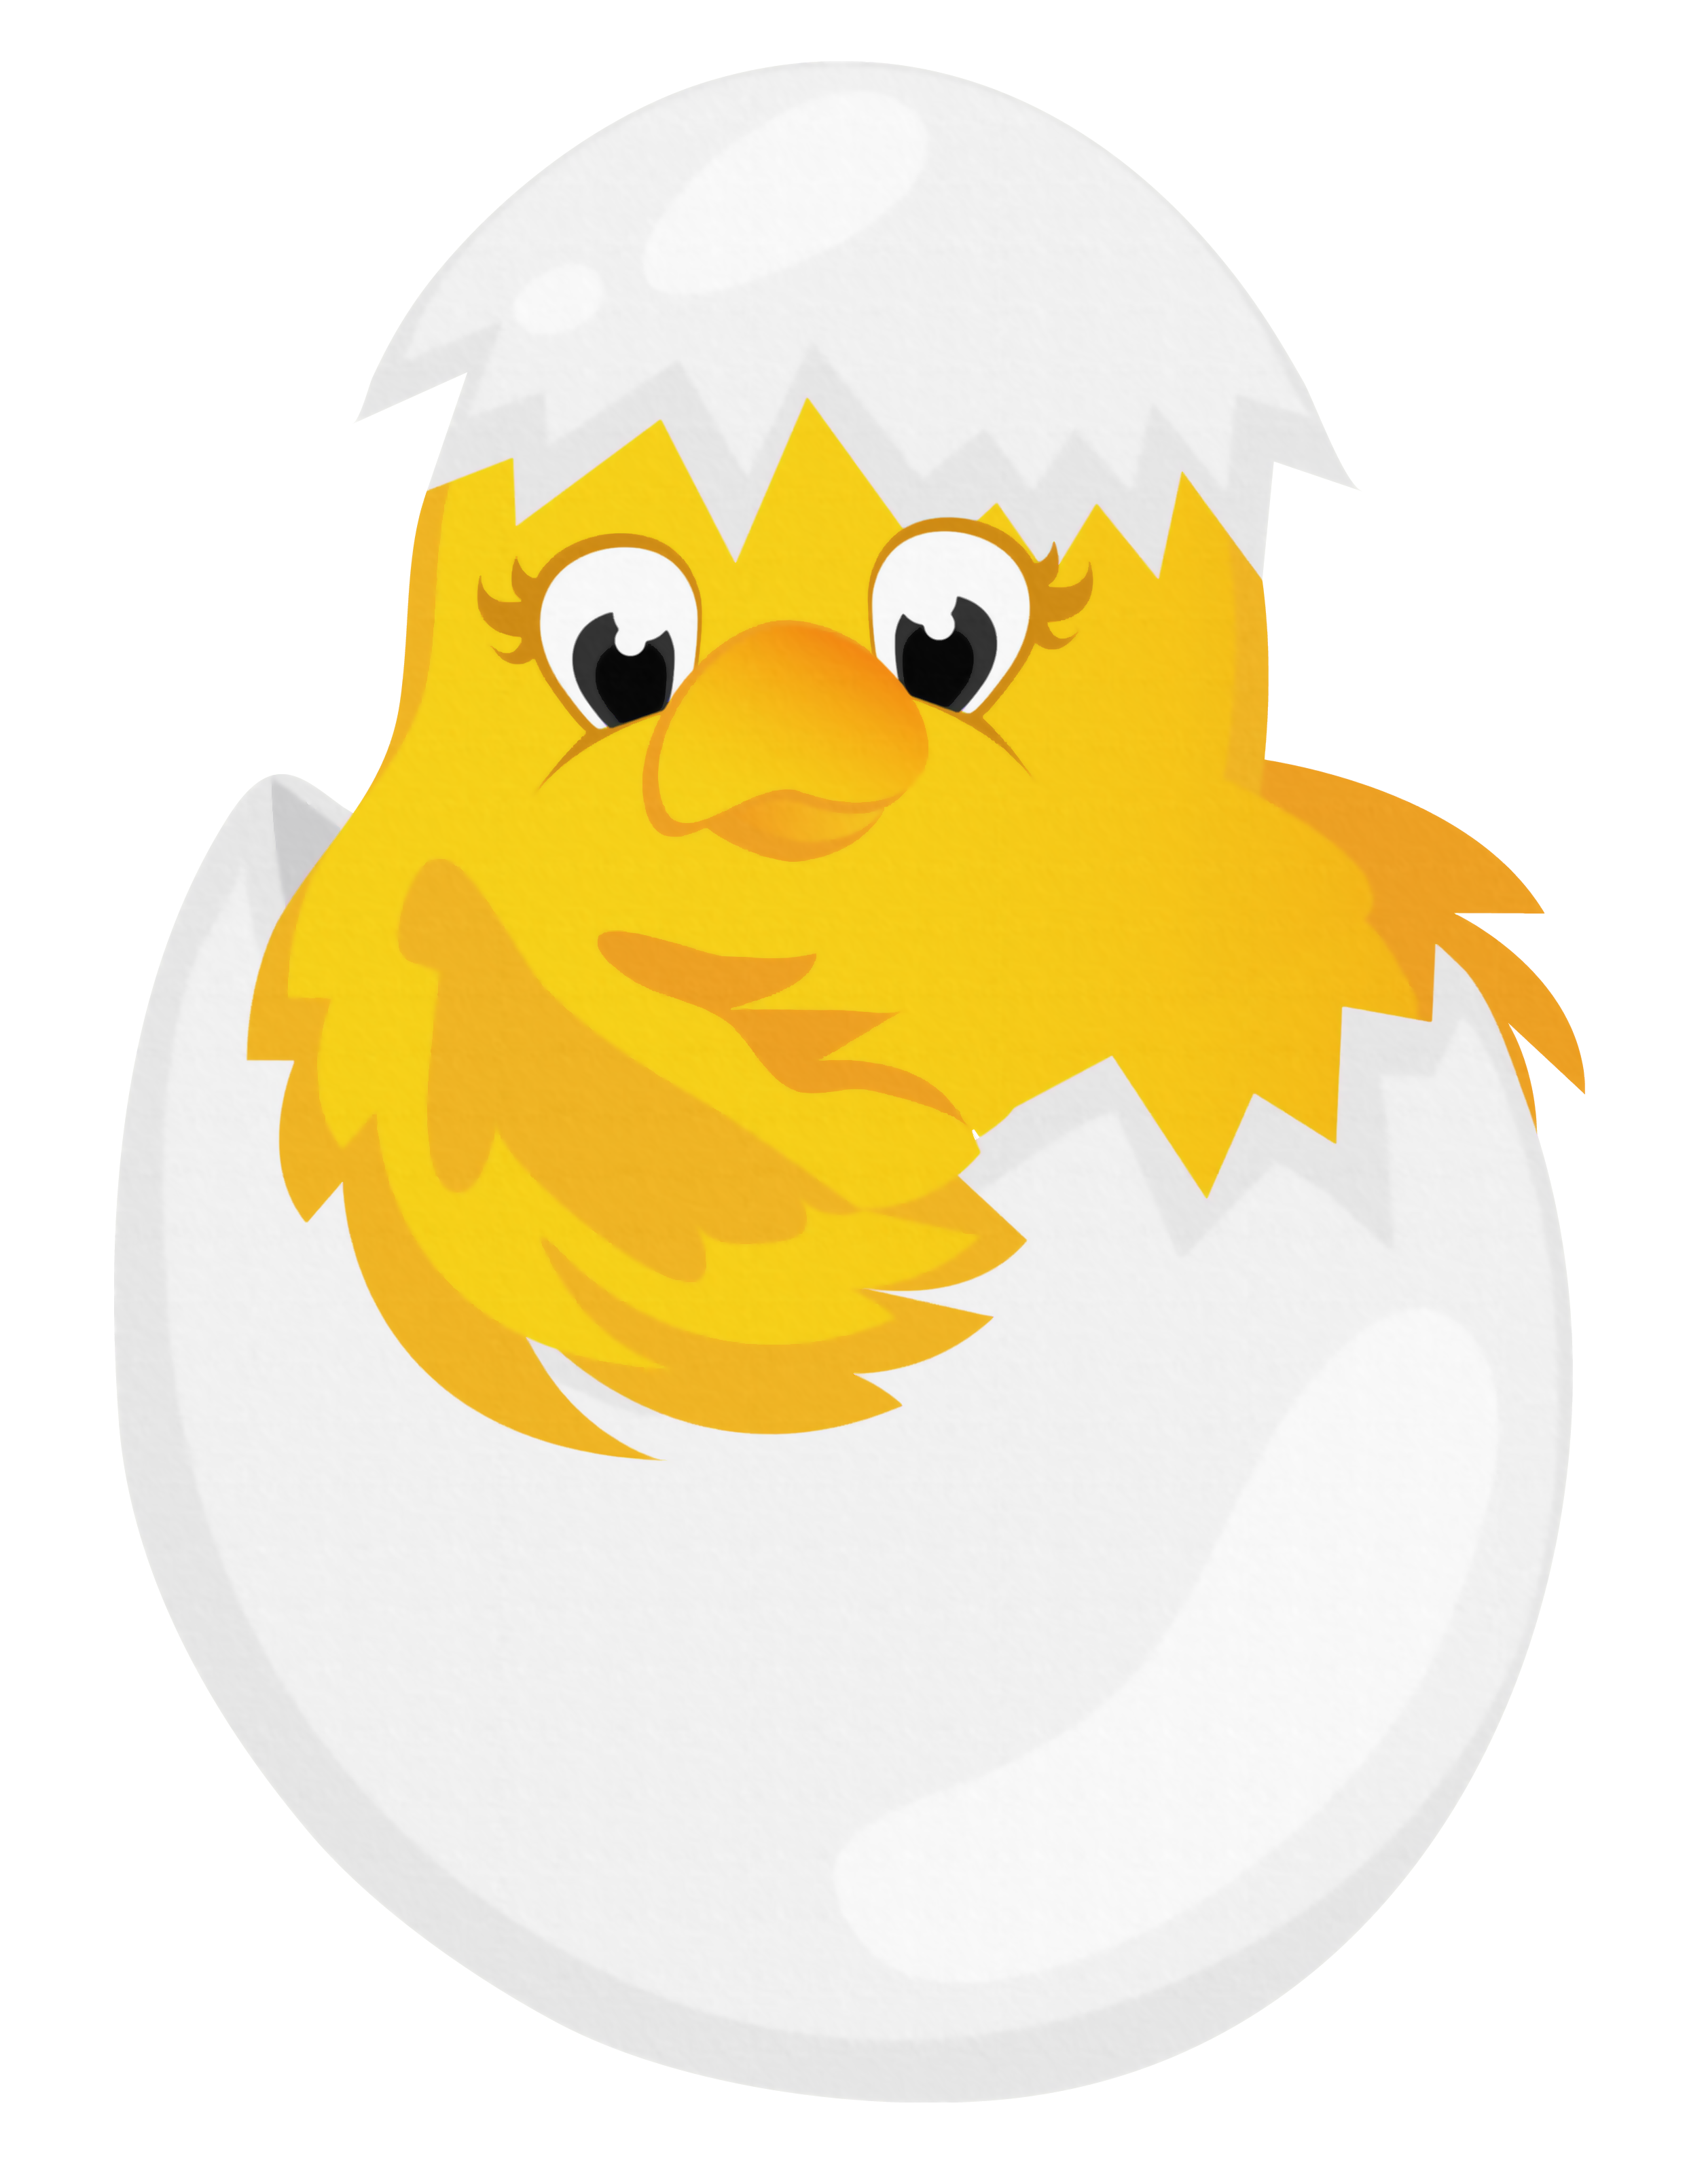 Clipart easter character. Chicken in egg transparent